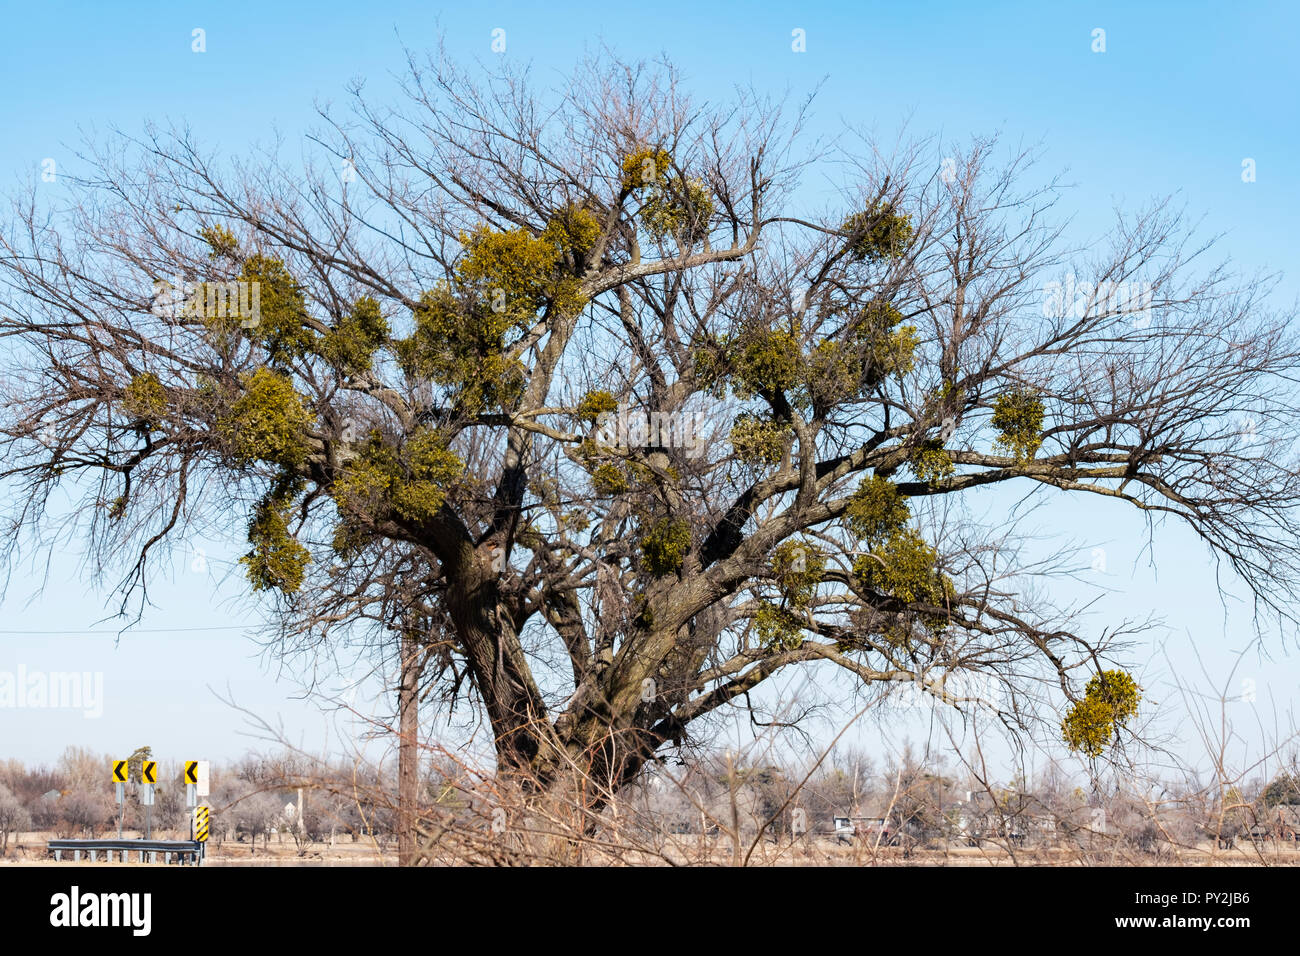 Mistletoe, an obligate hemiparastic plant on host tree in winter. State of Oklahoma official floral emblem. Oklahoma, USA. - Stock Image